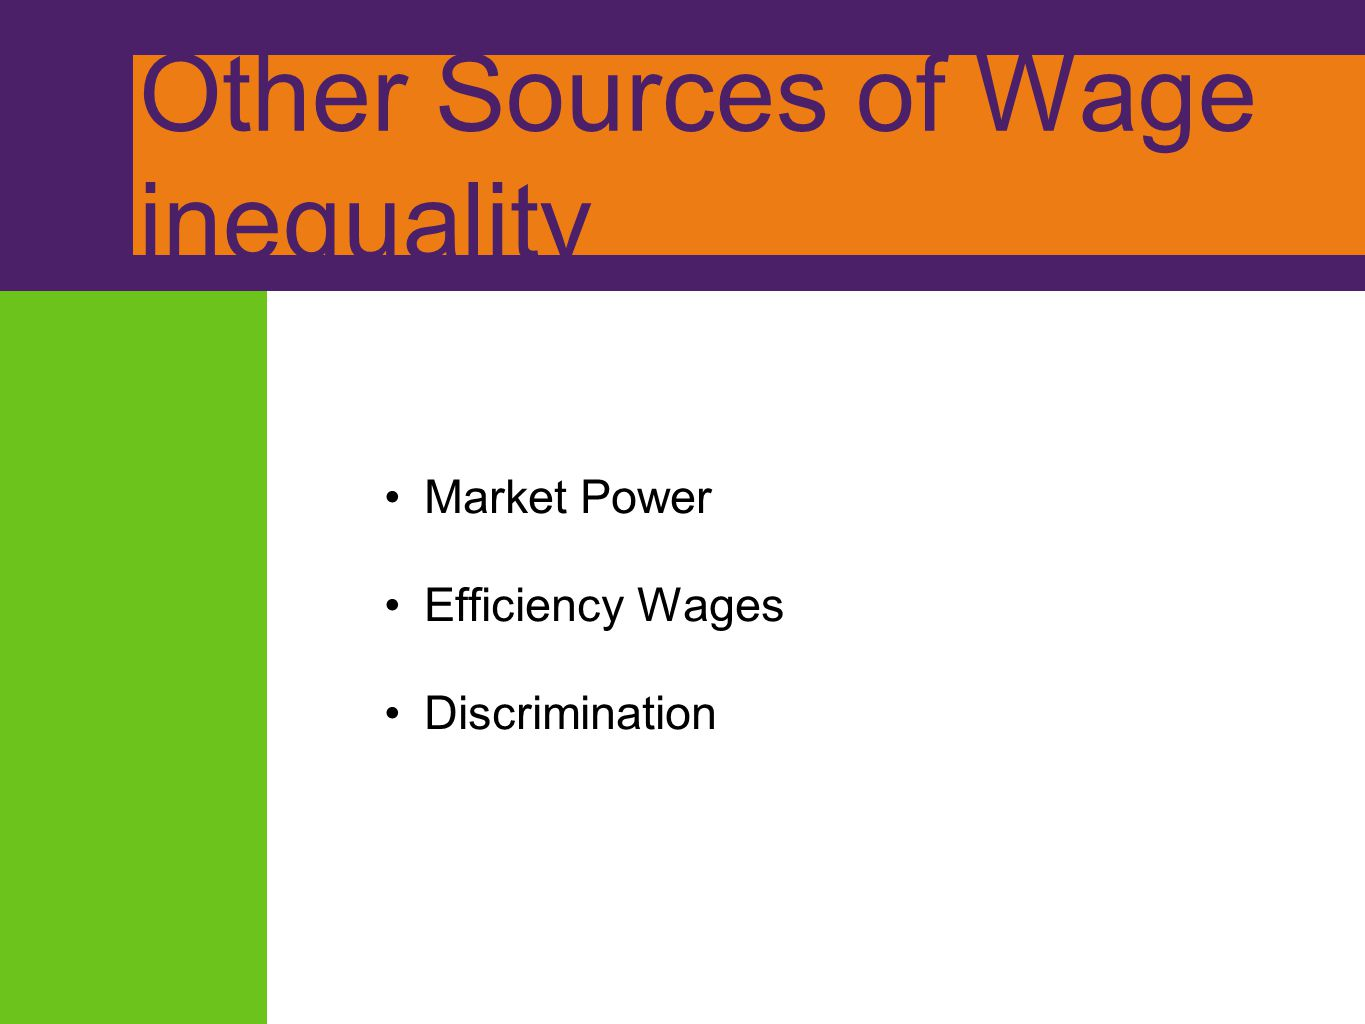 Other Sources of Wage inequality